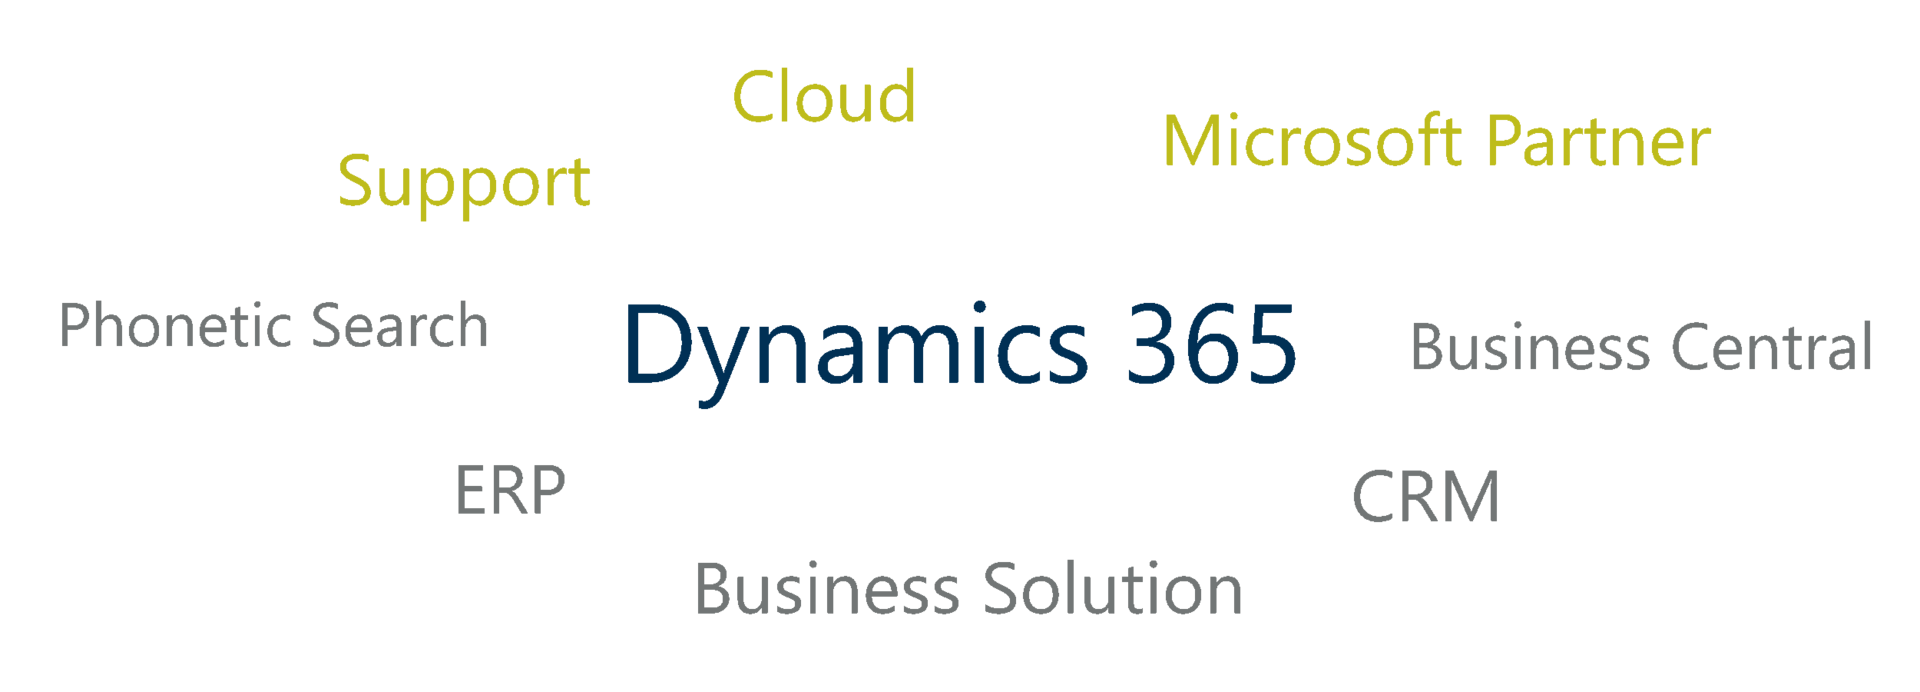 Dynamics 365 Business Central - Phonetic Search